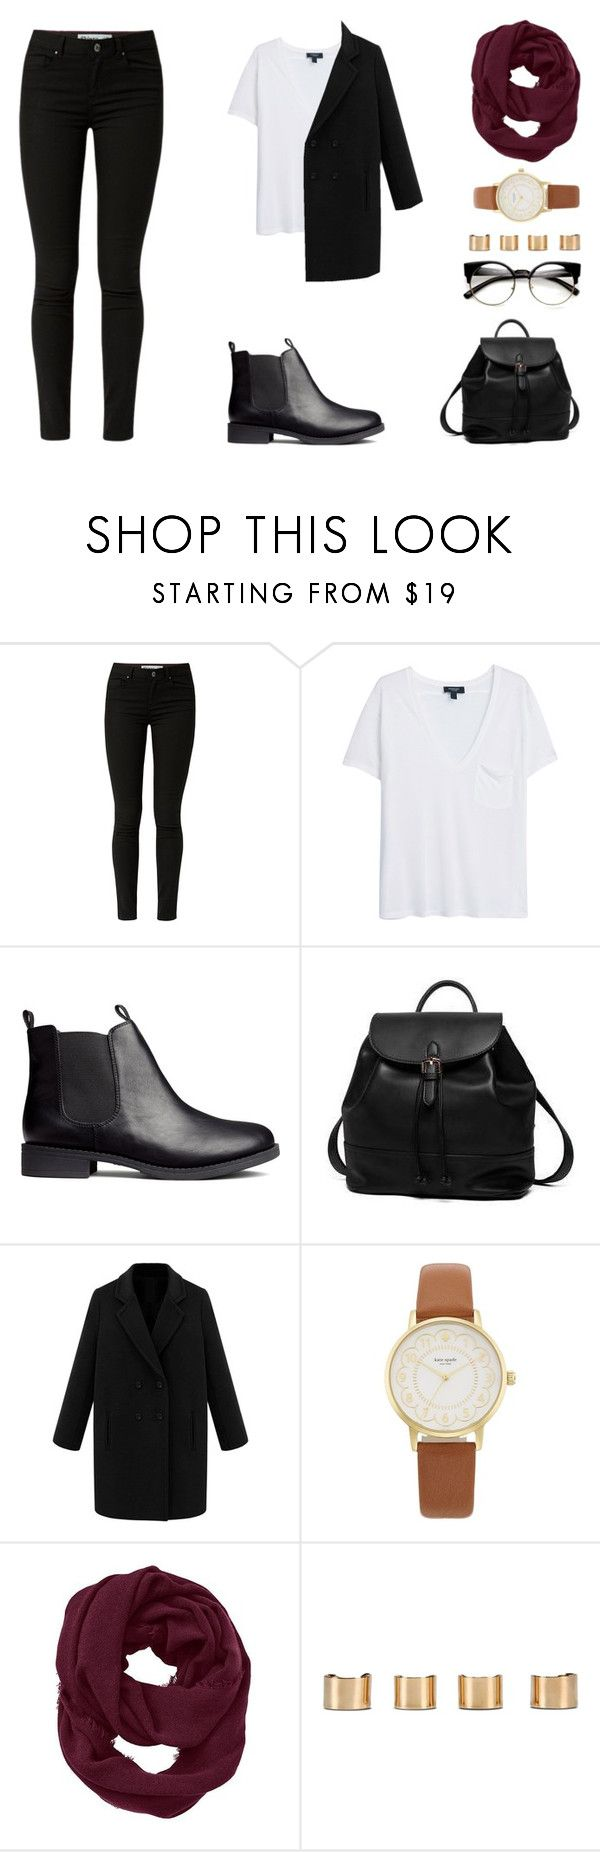 """""""Nothing"""" by forestfauna on Polyvore featuring MANGO, H&M, Princess Carousel, Kate Spade, Athleta and Maison Margiela"""